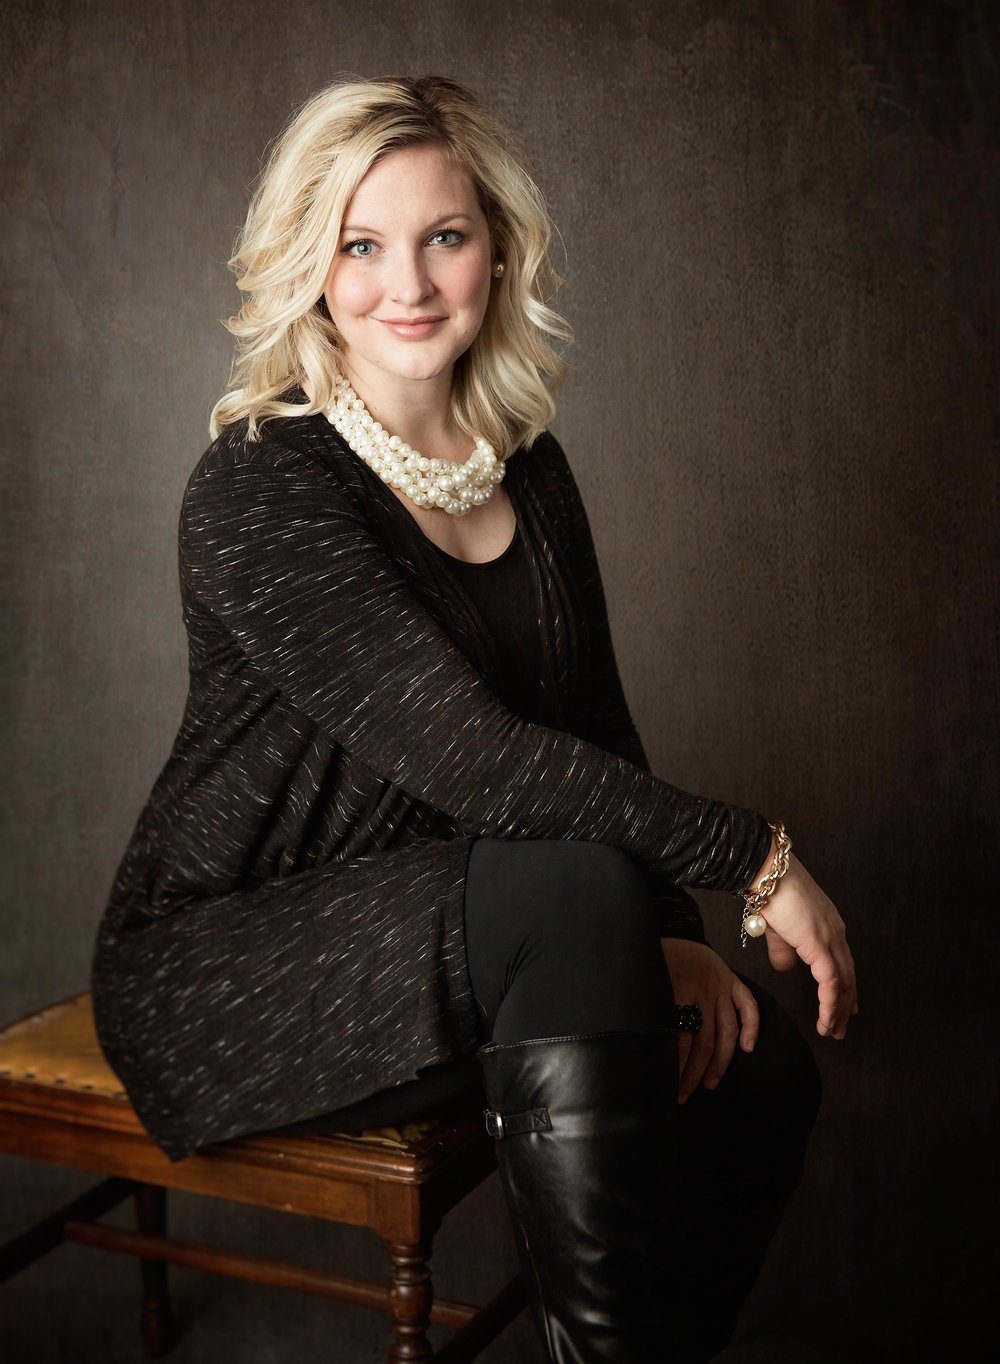 Centric Owner, Kati Cooley. Photo courtesy of Centric Creative Consulting.